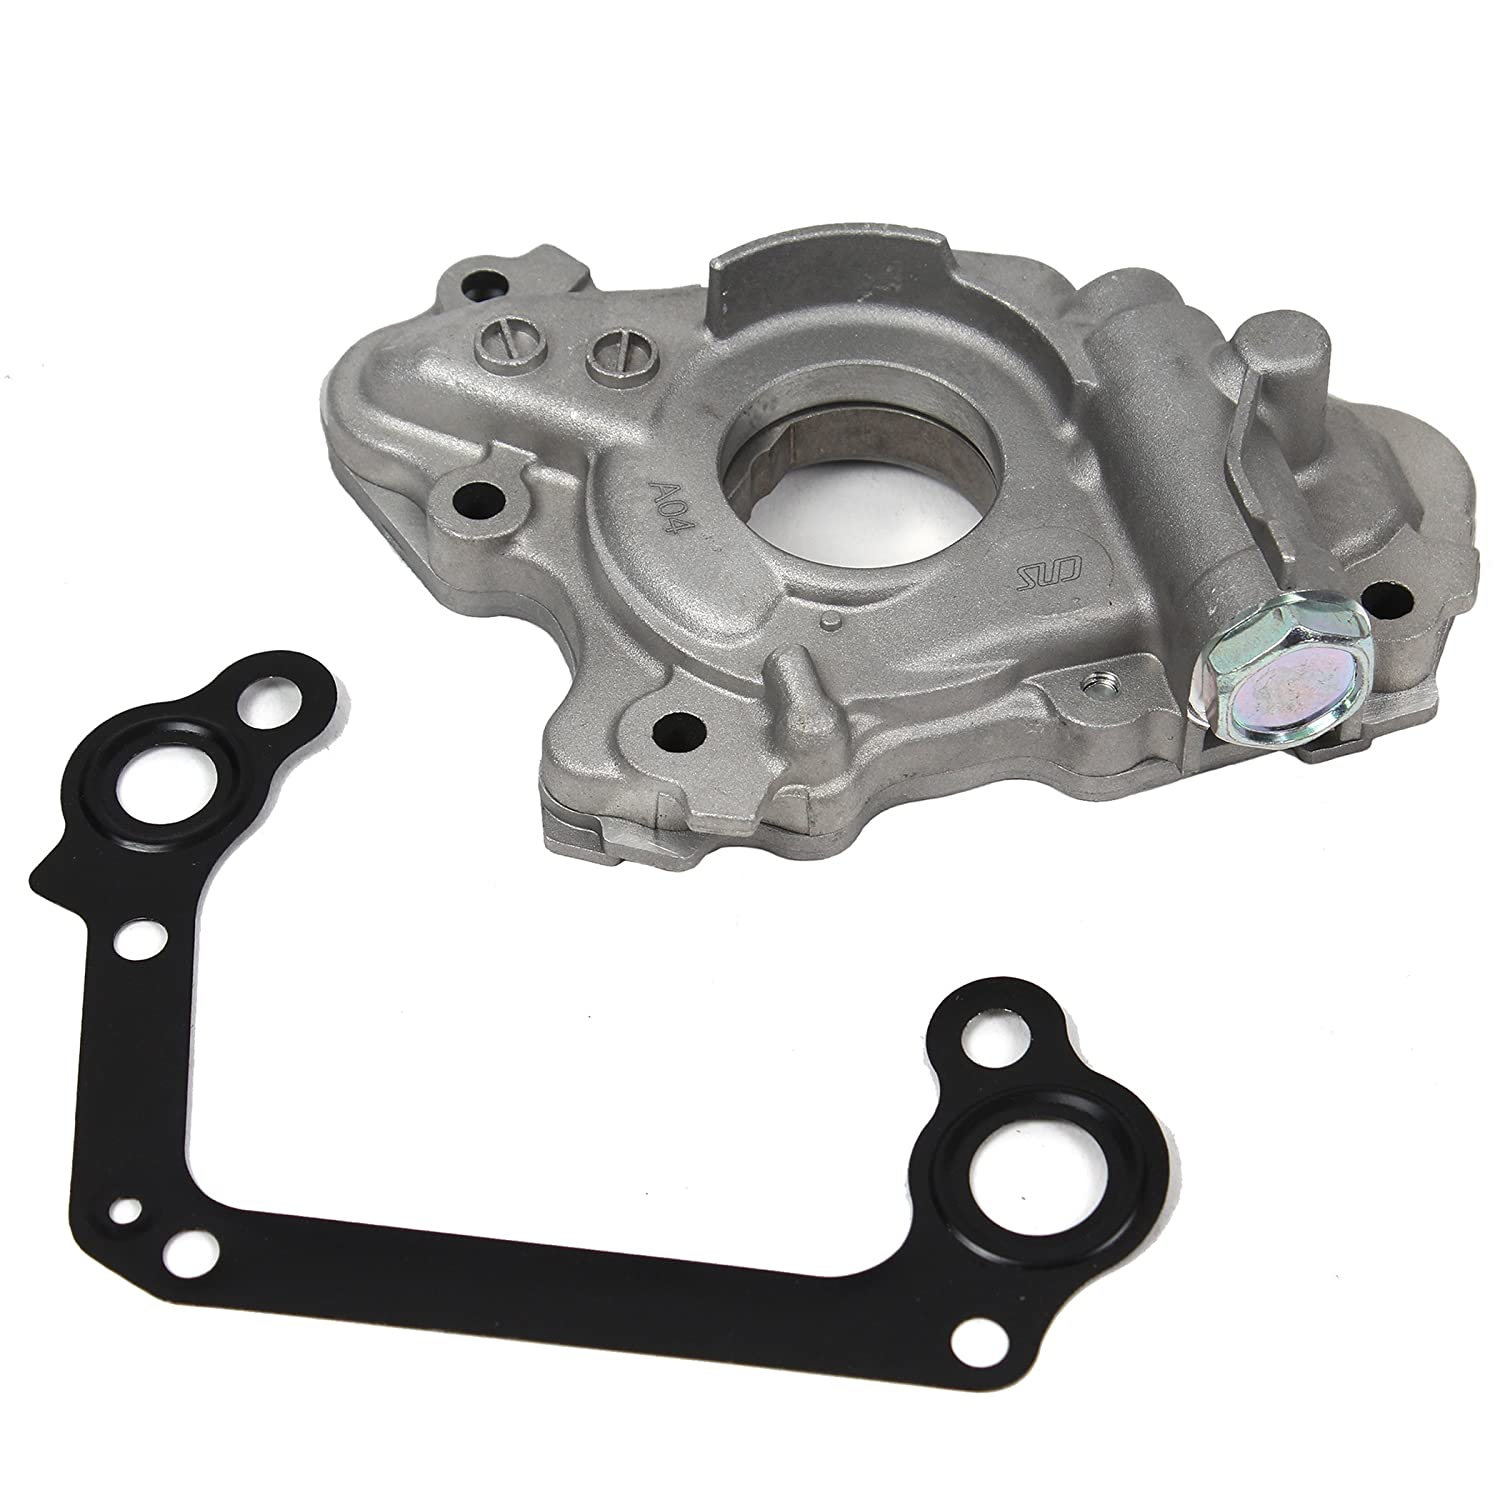 New OP00044-1 Engine Oil Pump & Gasket (Metal) for 98-08 Toyota 1.8L DOHC 1ZZFE 1ZZ-FE Corolla Celica GT Matrix MR2 Spyder / Chevy Prizm Pontiac Vibe Base CNS EngineParts